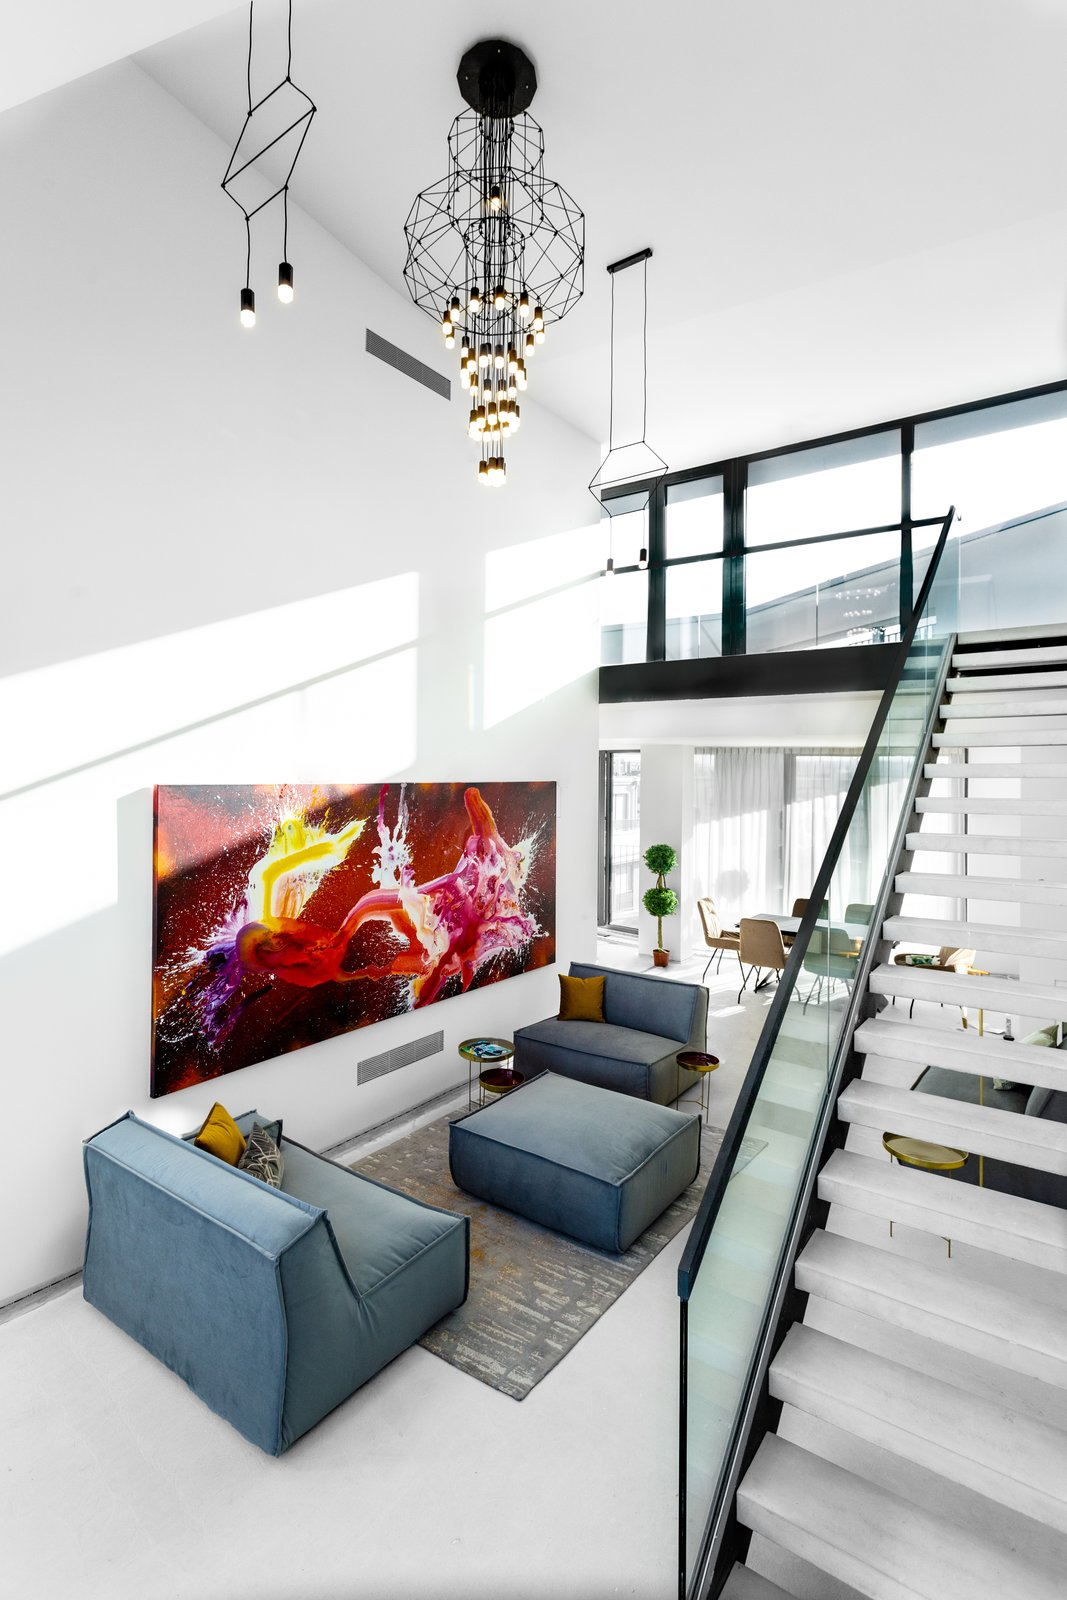 Living Room, Ceiling Lighting, and Sofa SAPPHIRE Super Penthouse, VON ALBERT REAL ESTATE  SAPPHIRE Super Penthouse